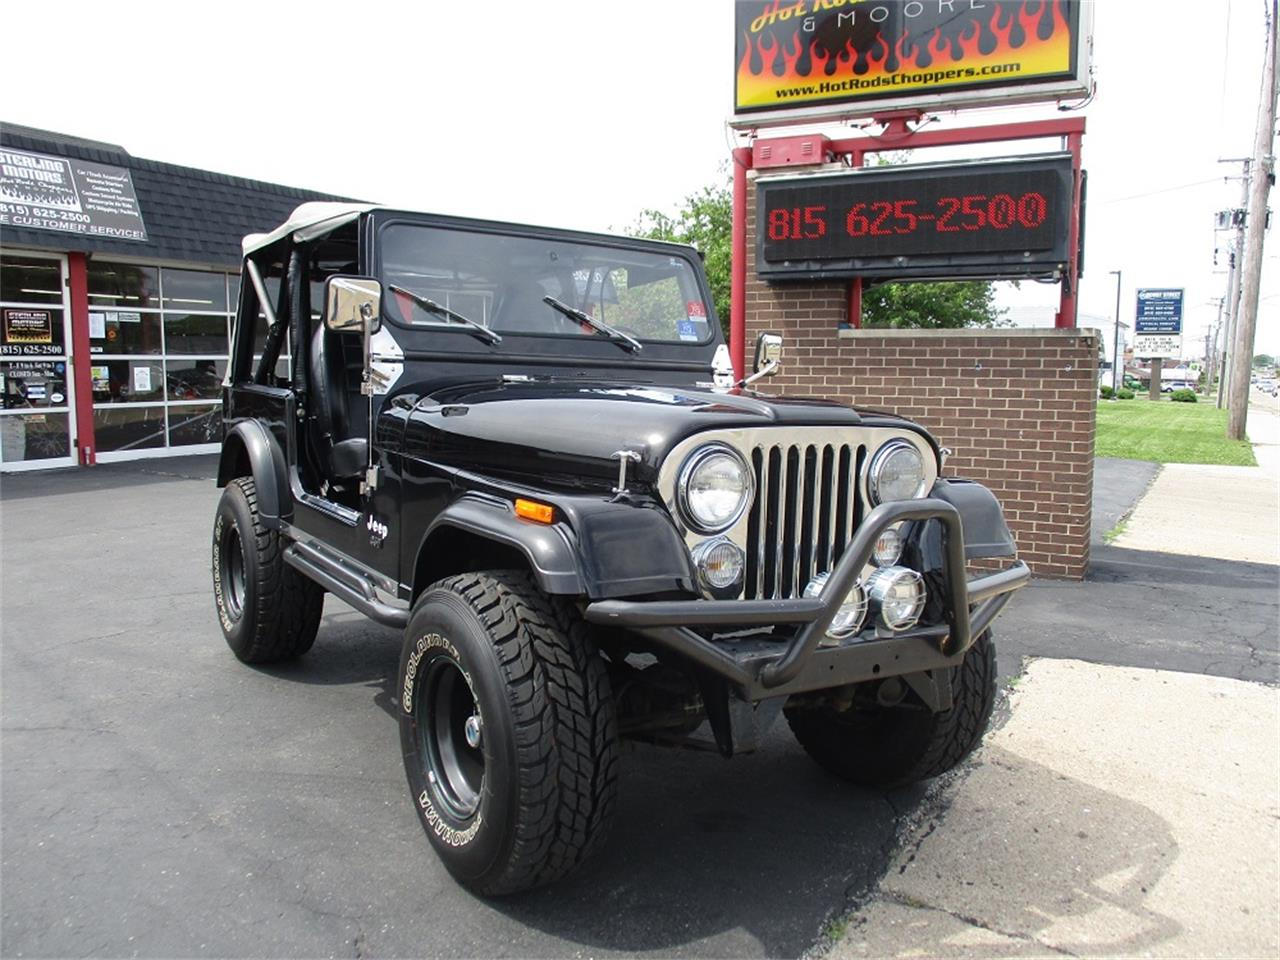 Large Picture of '80 Jeep CJ7 located in Illinois - $14,900.00 - QUE6